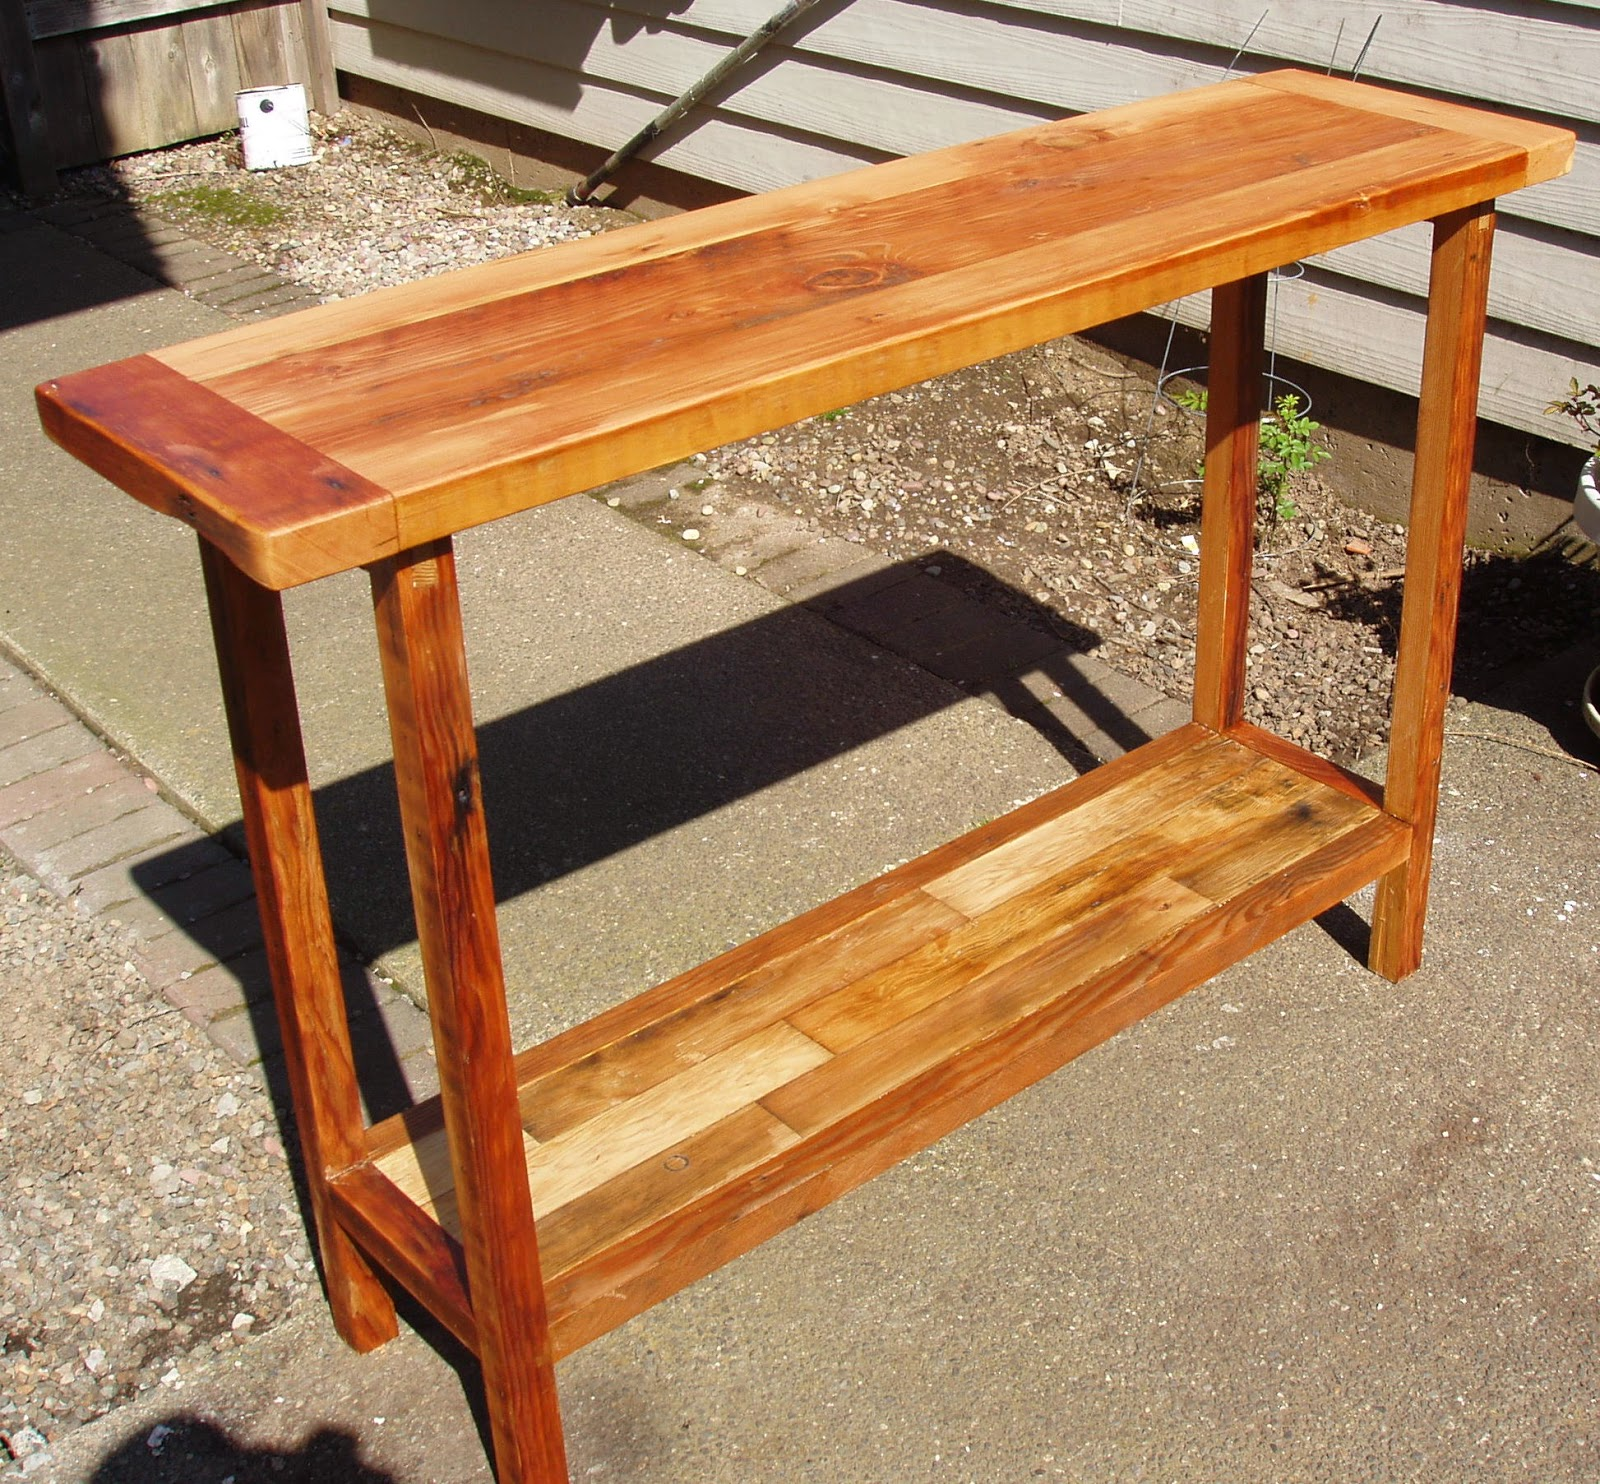 Genial Hand Cut Mortise And Tenon Joints On The Bottom Rails, And Bridle Joints  For The Top Rails. The Slab Is All Dowel Joined. Feel Free To Browse My  Etsy Shop ...